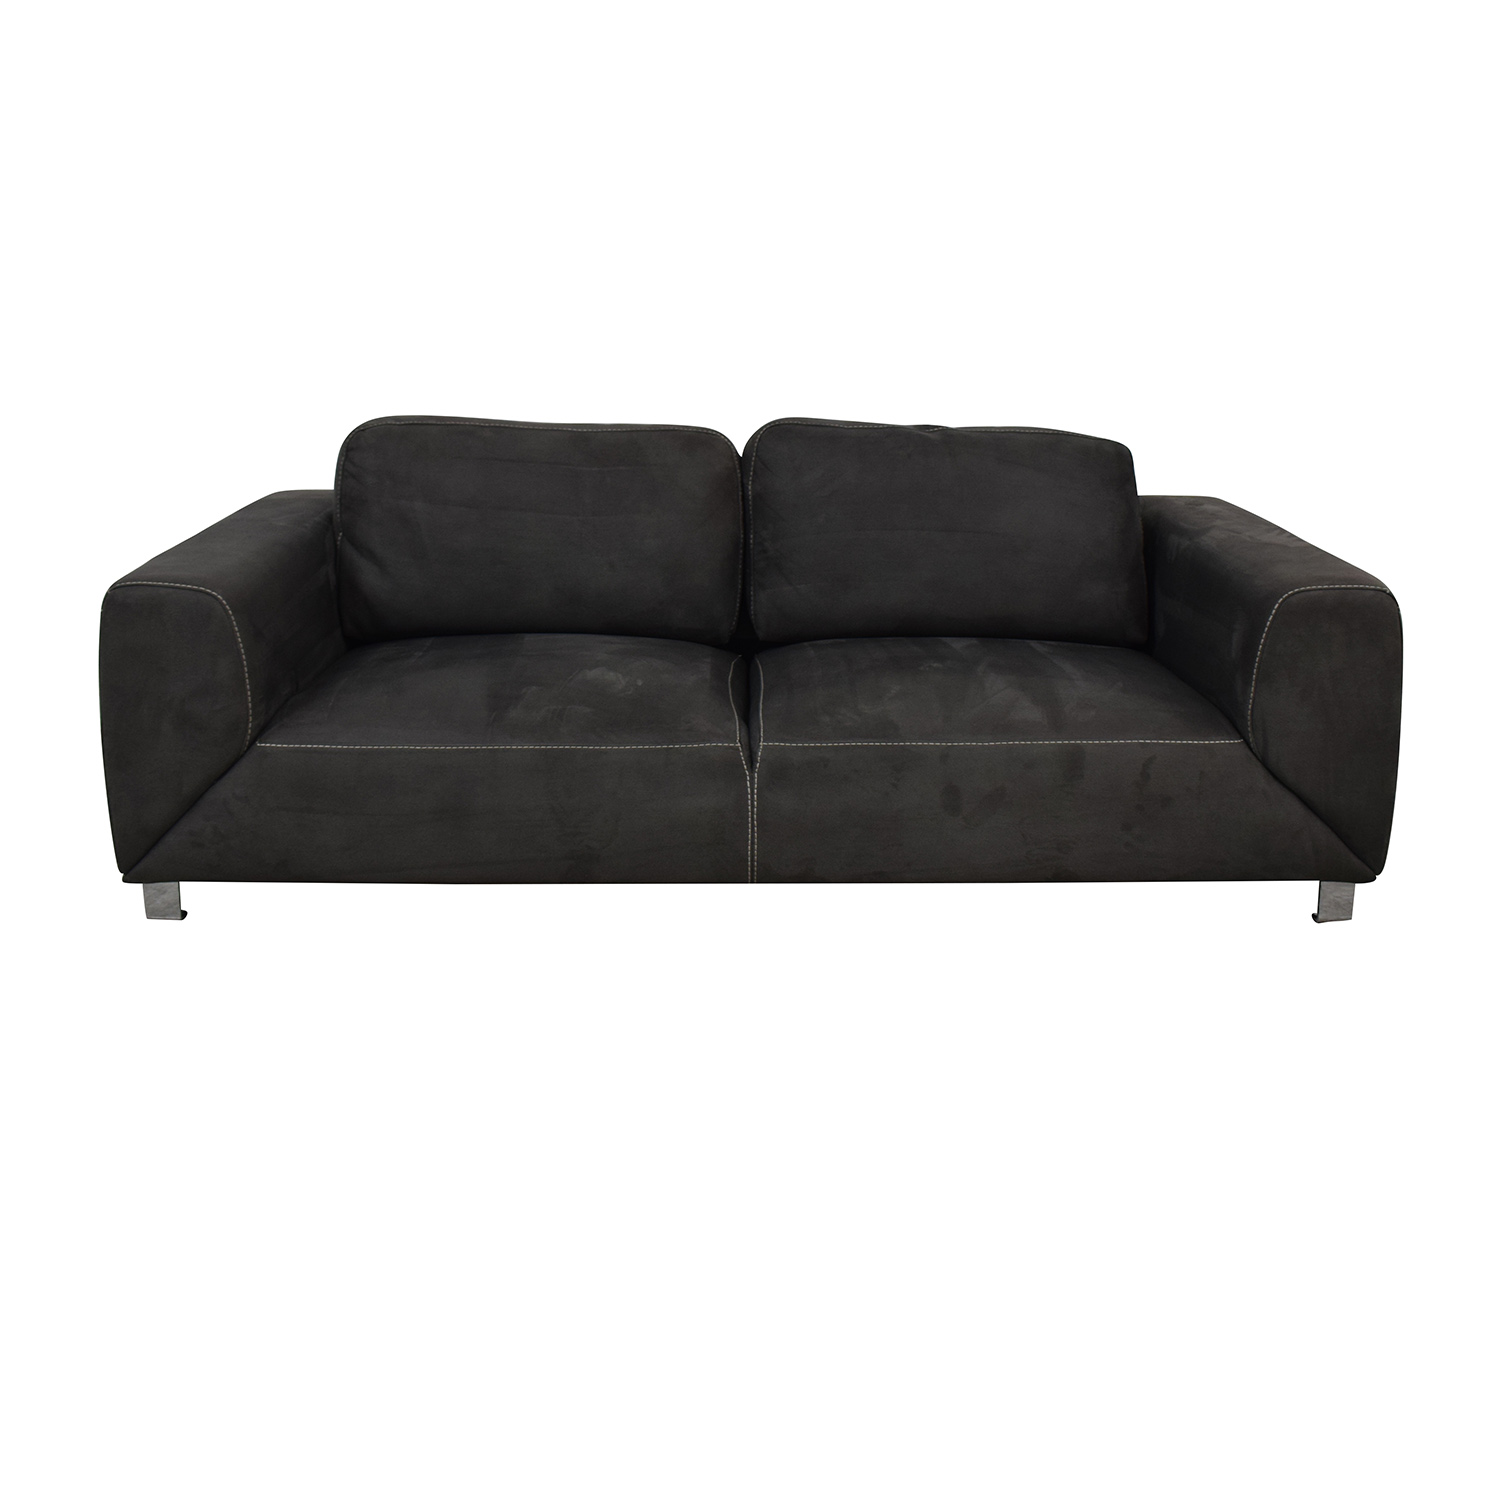 buy Monarch Furniture Grey Couch Monarch Furniture Sofas